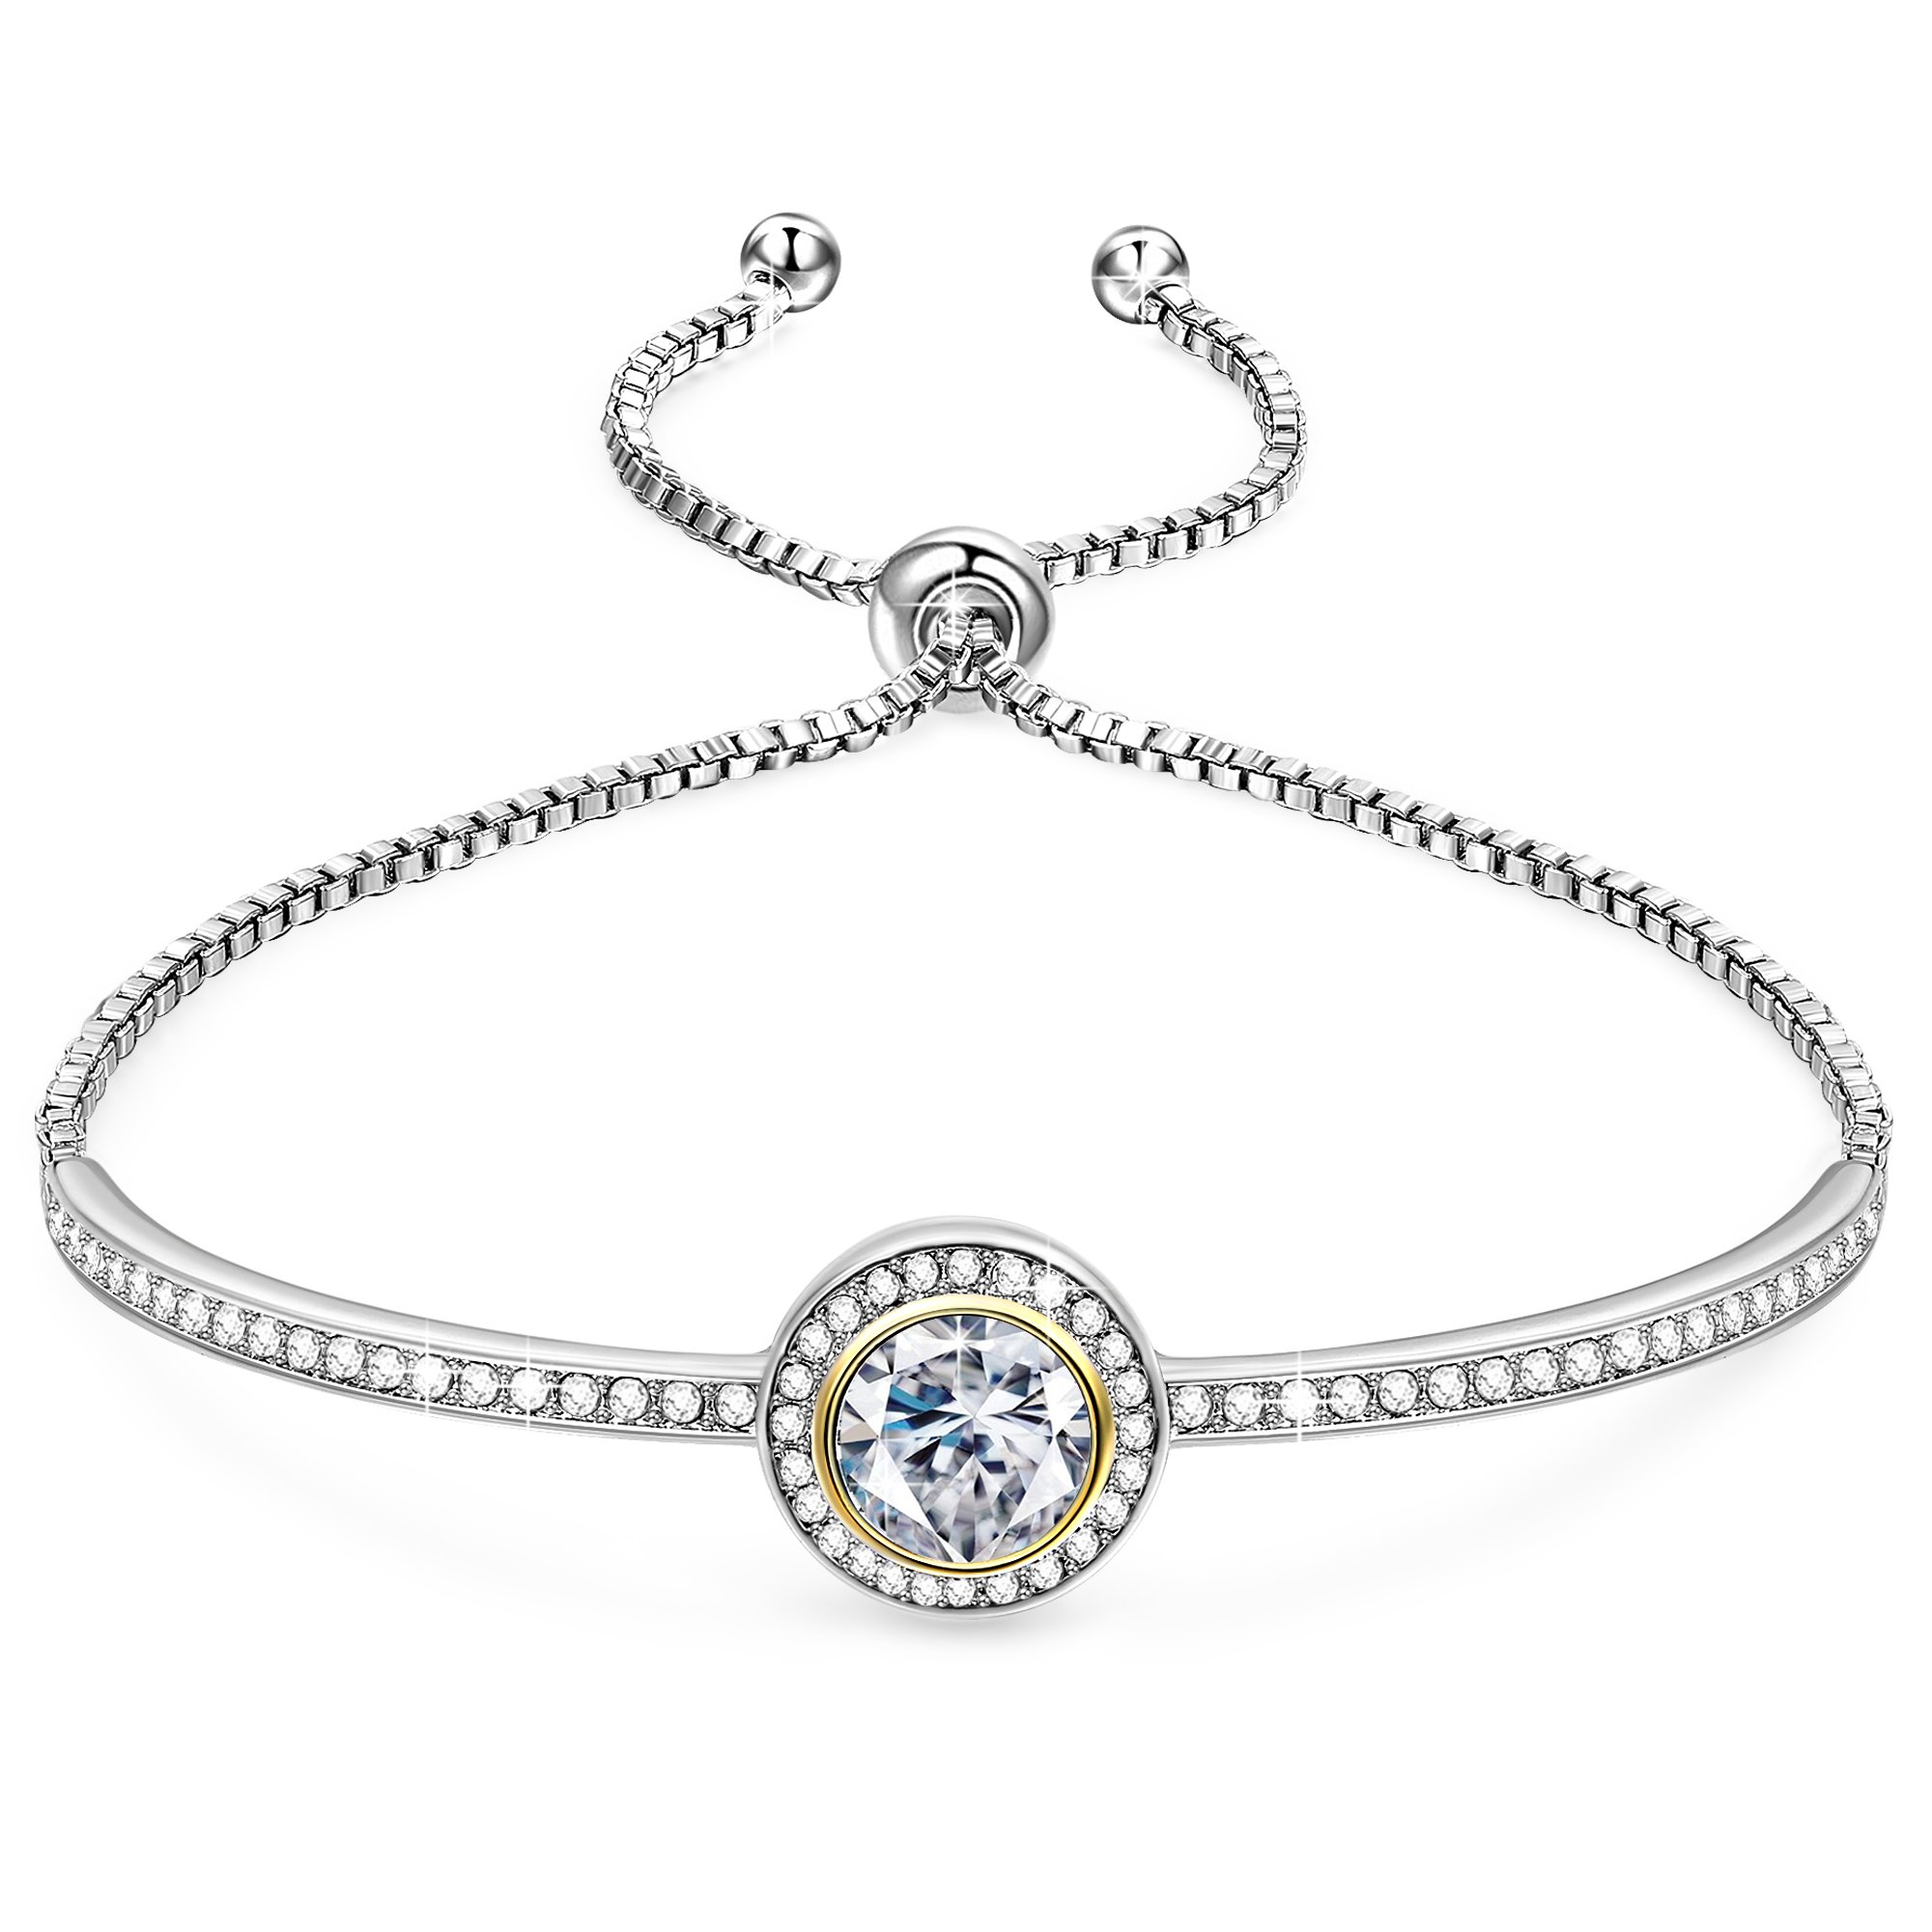 GEORGE · SMITH Birthday Gifts''Endless Saturn''Classic Design Adjustable Women Bangle Bracelet Crystals from Swarovski, Jewelry for Women -a Luxury Gift Box Included by GEORGE · SMITH